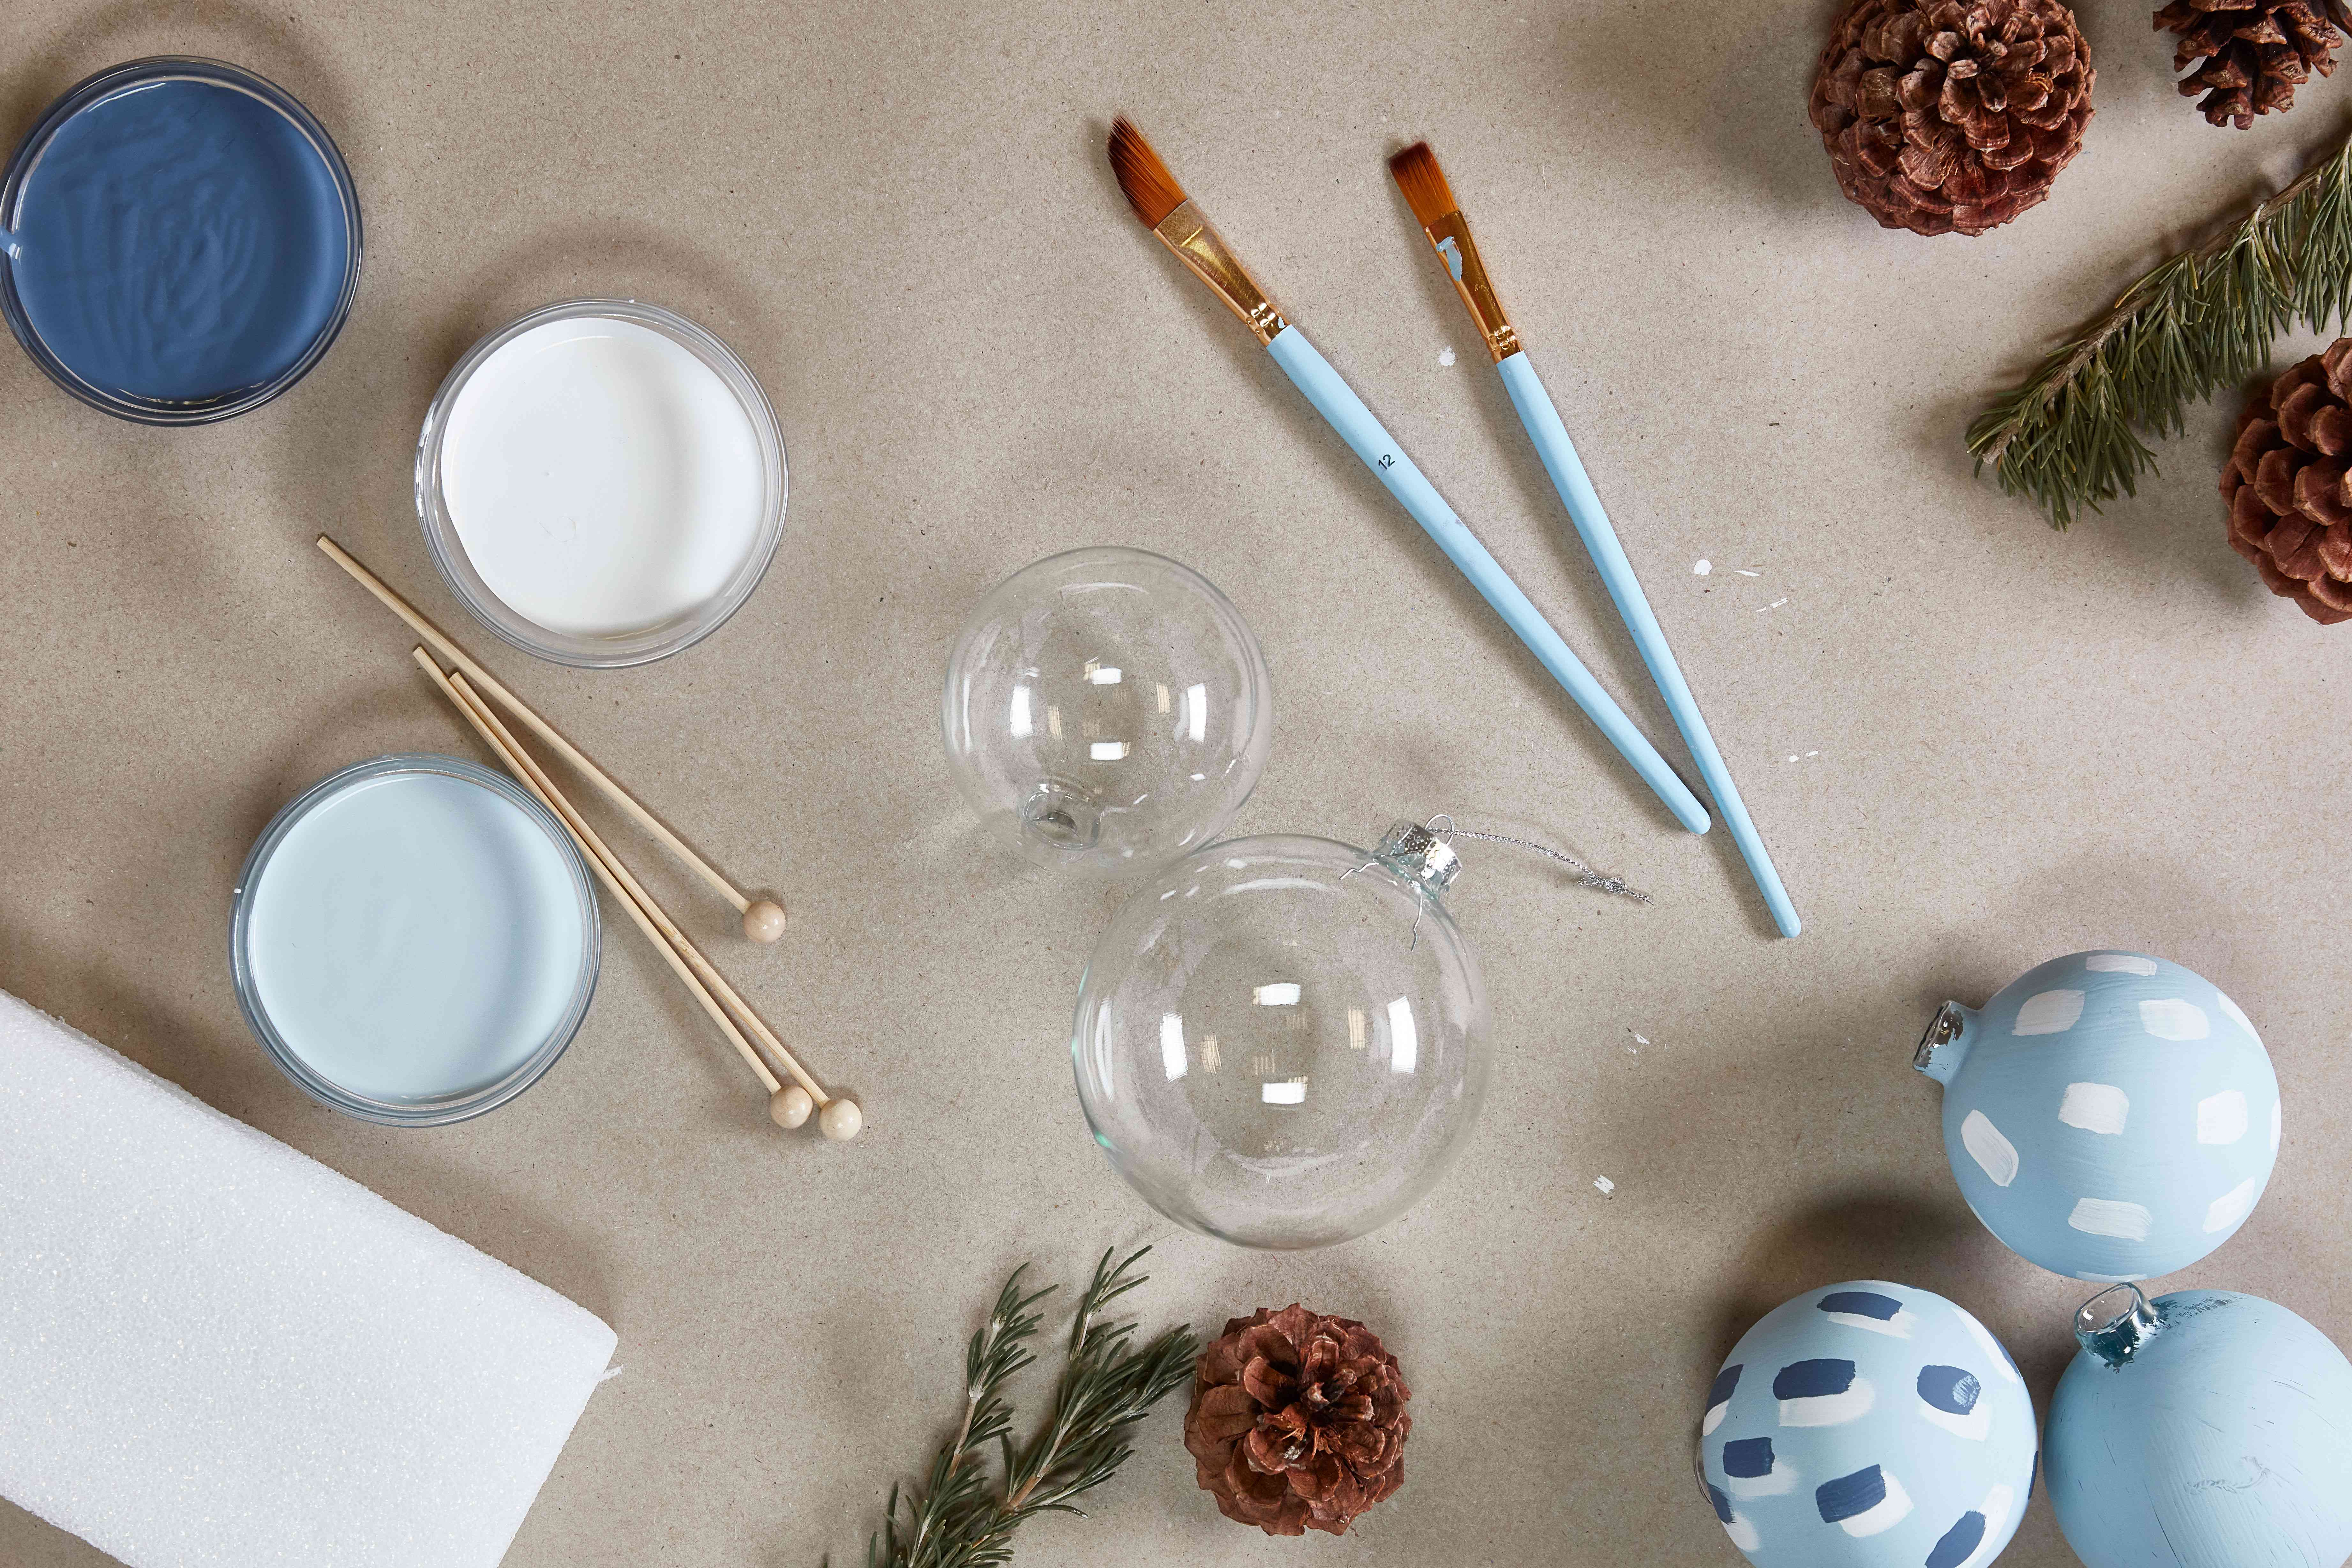 Supplies for painting ornaments